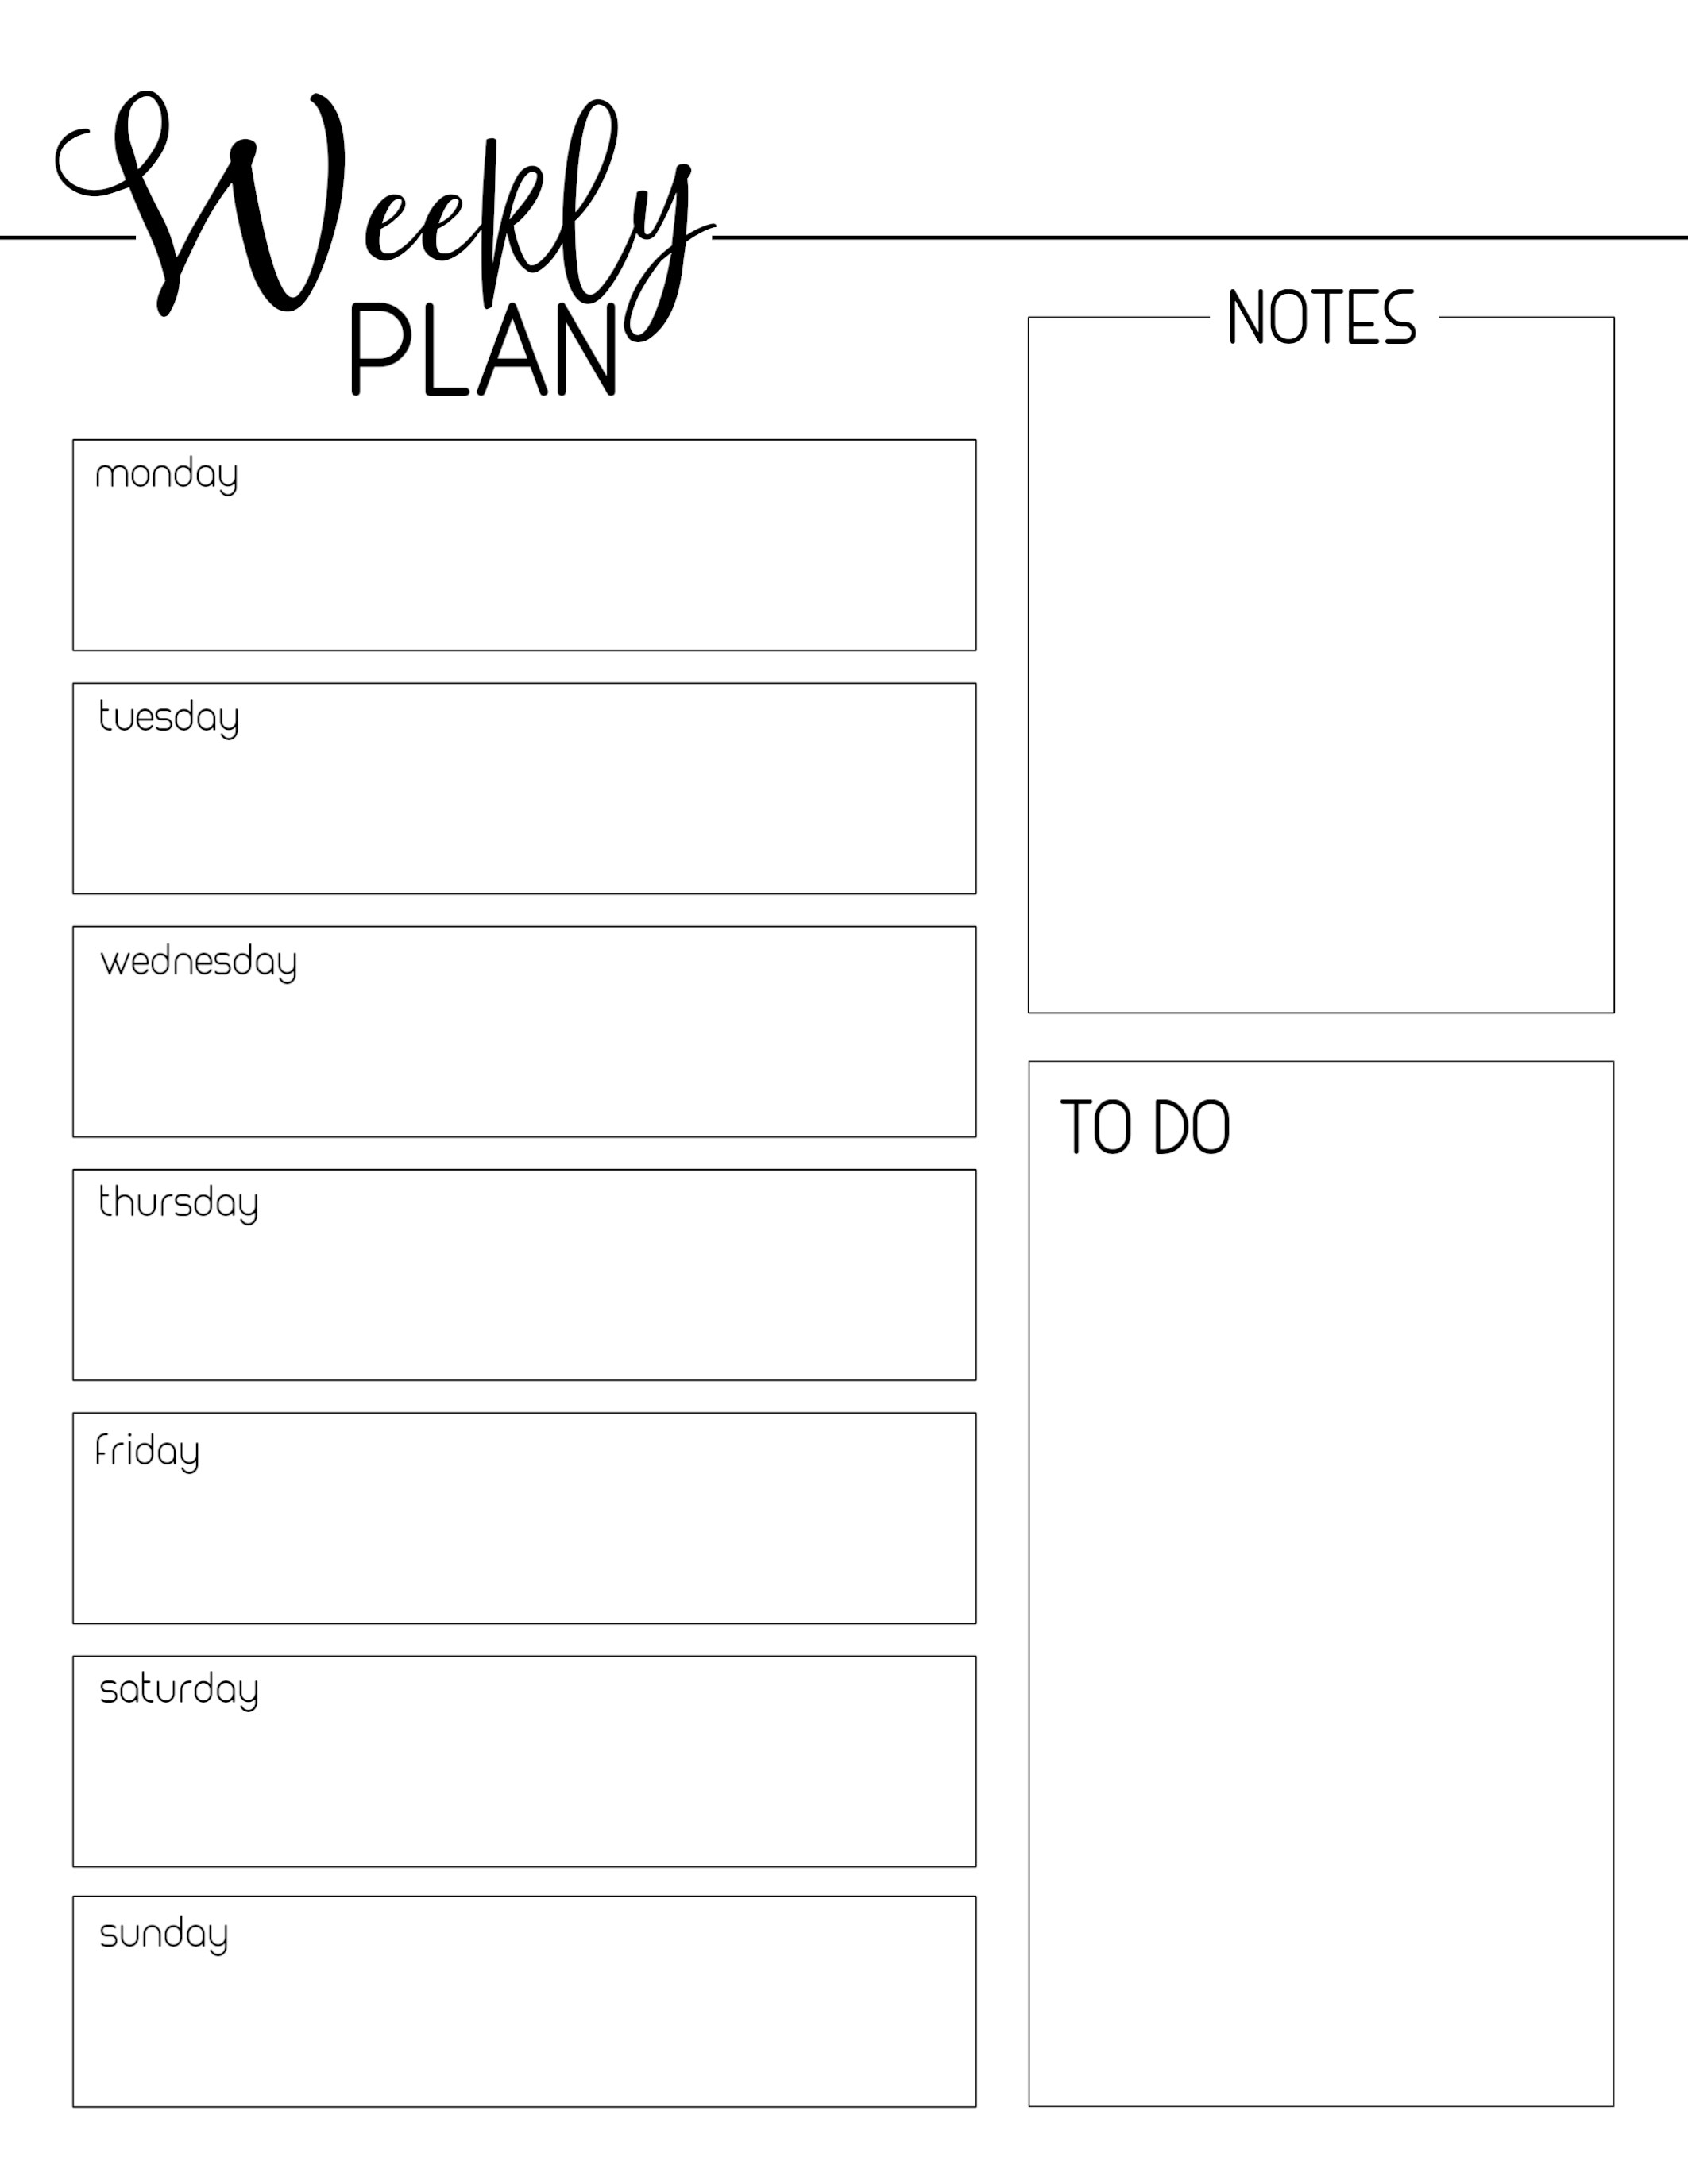 Weekly Planner Template Free Printable - Paper Trail Design regarding Weekly Schedule Template Free To Print